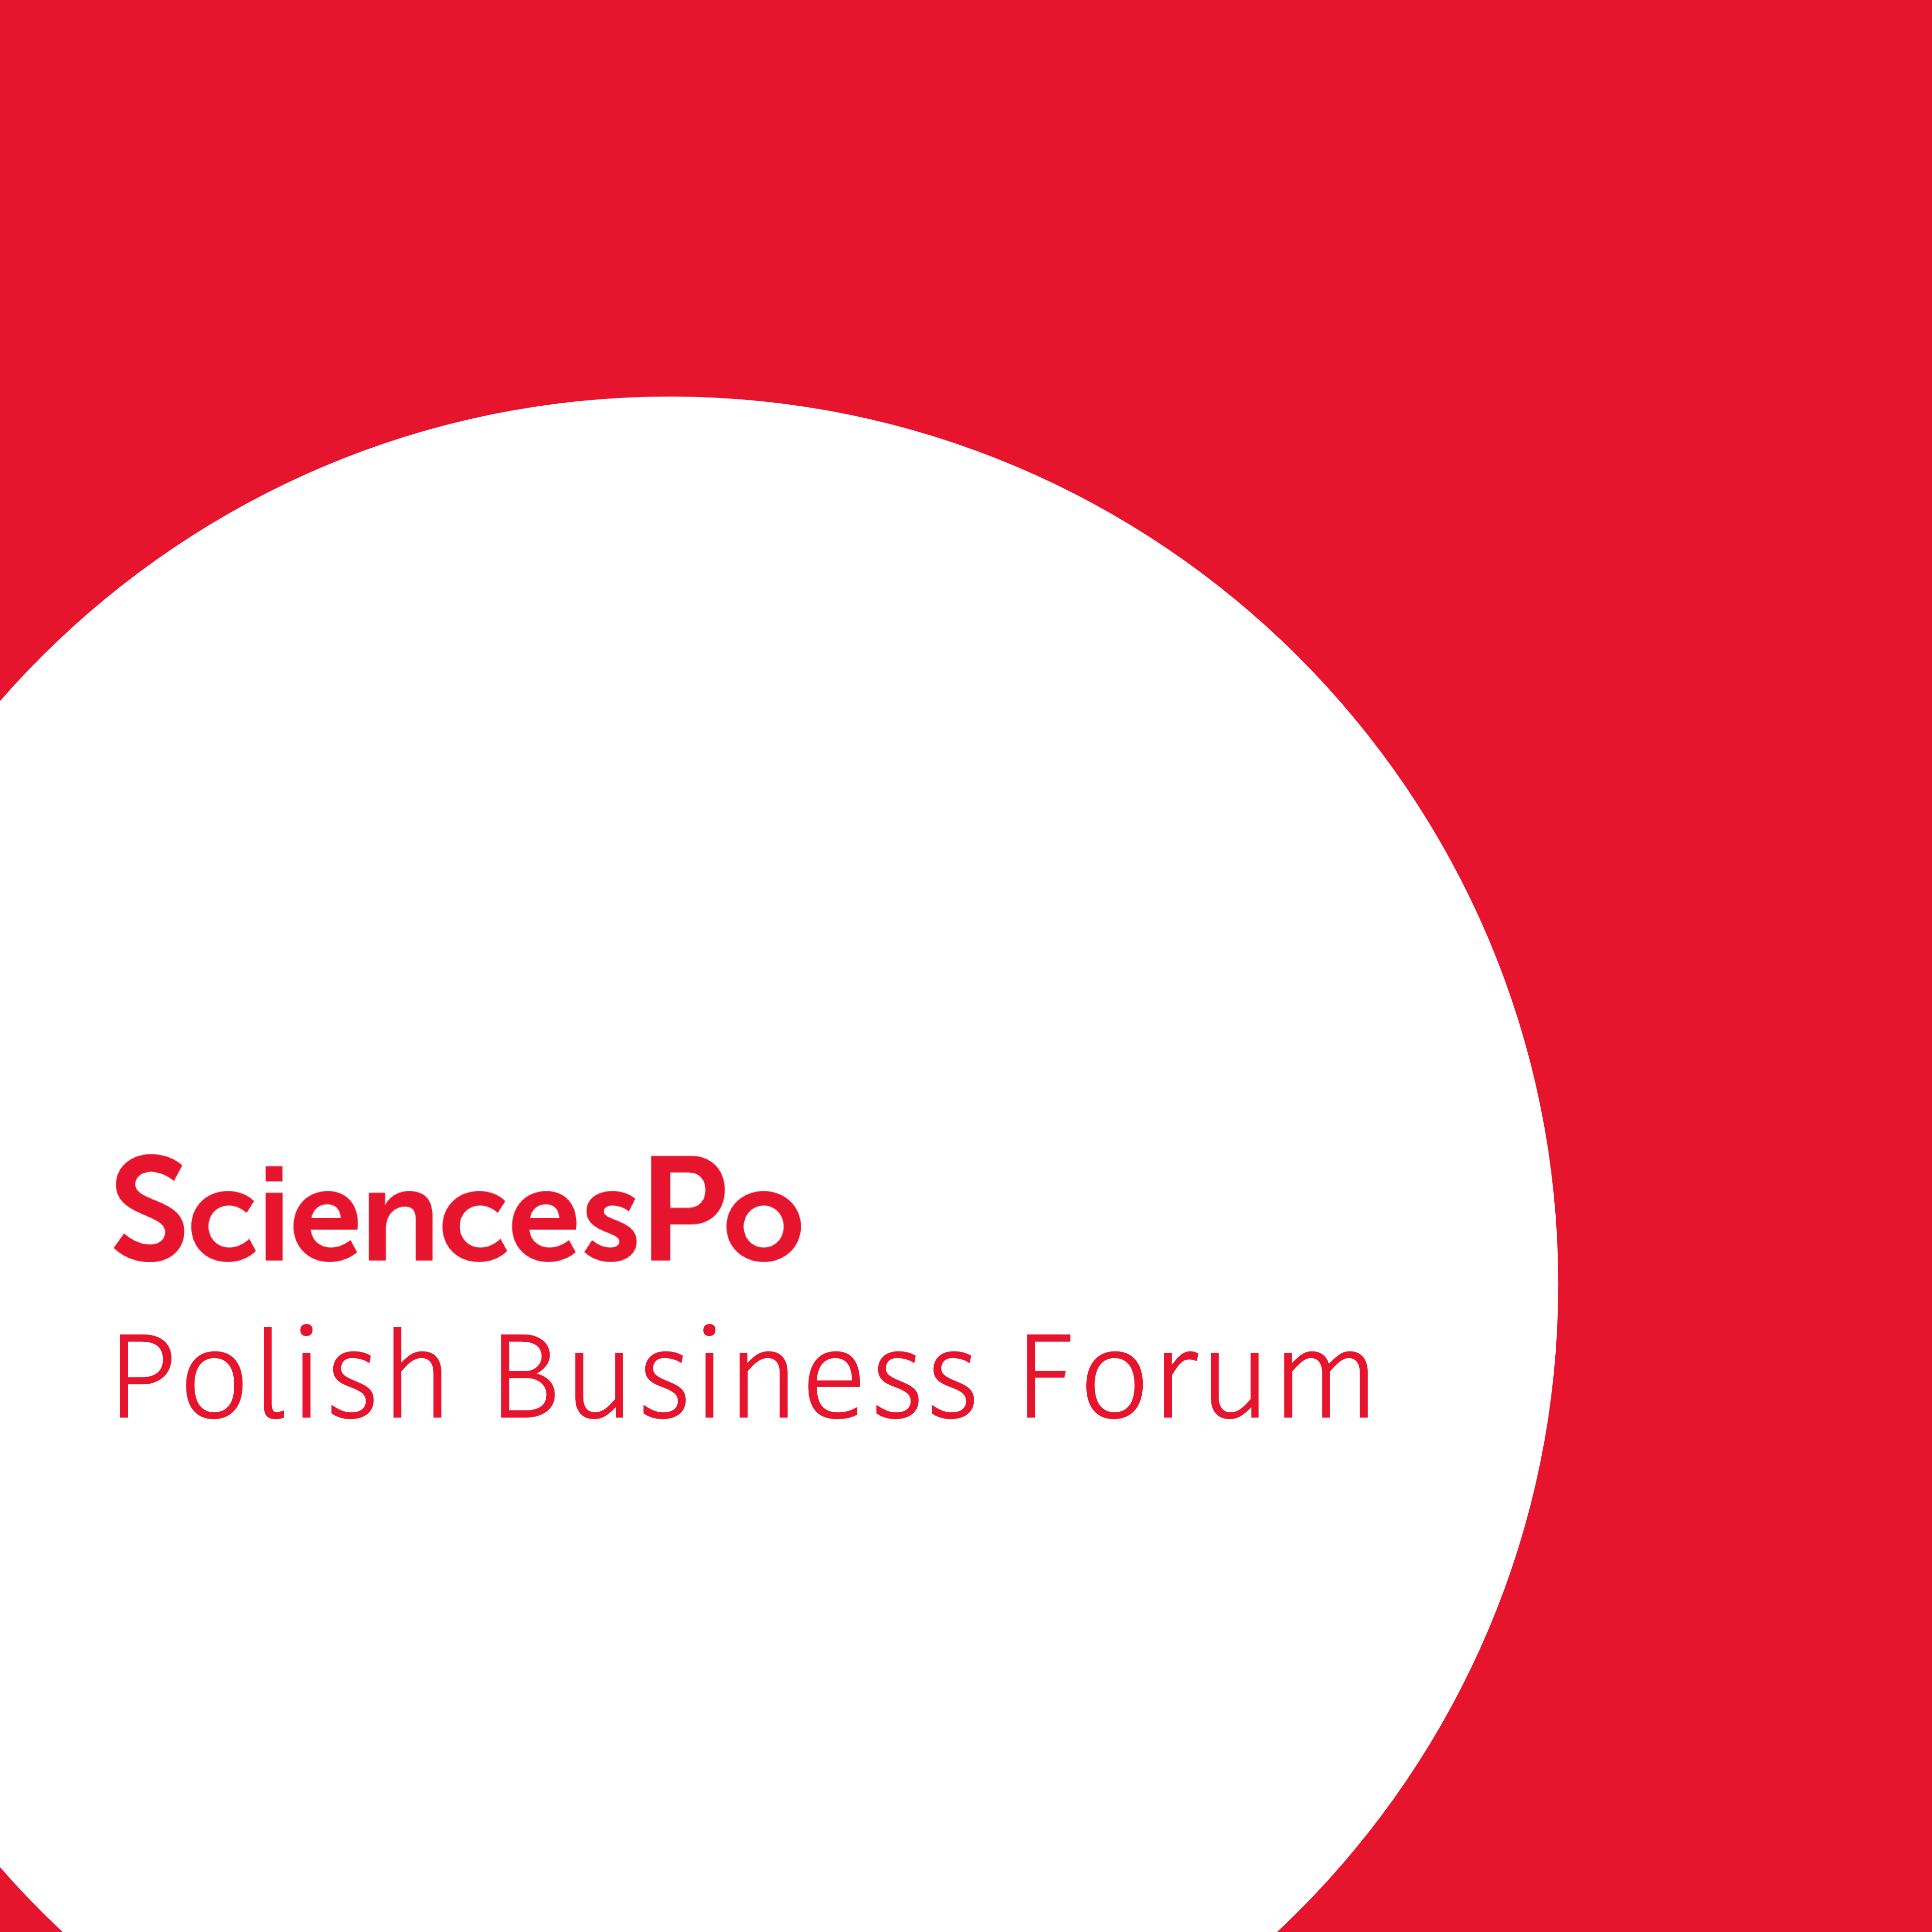 Polish Business Forum le 25 février à Science Po